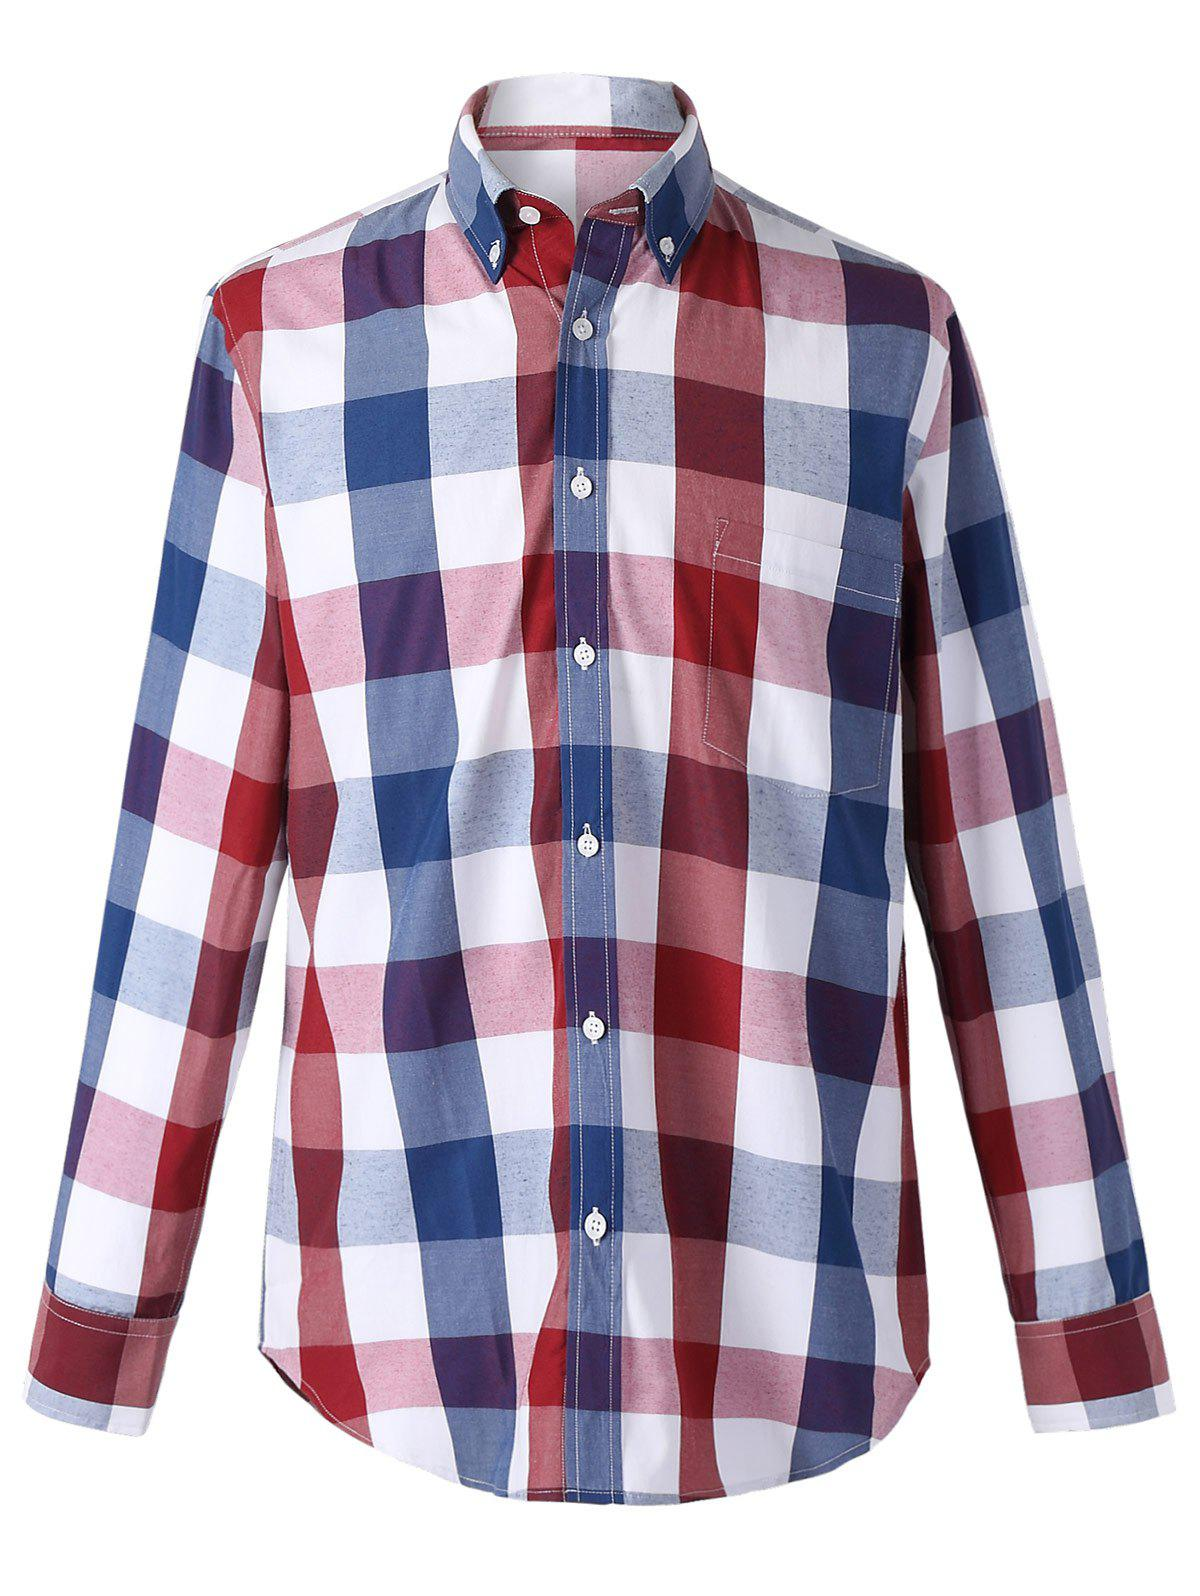 Find blue and red plaid shirt at ShopStyle. Shop the latest collection of blue and red plaid shirt from the most popular stores - all in one place.